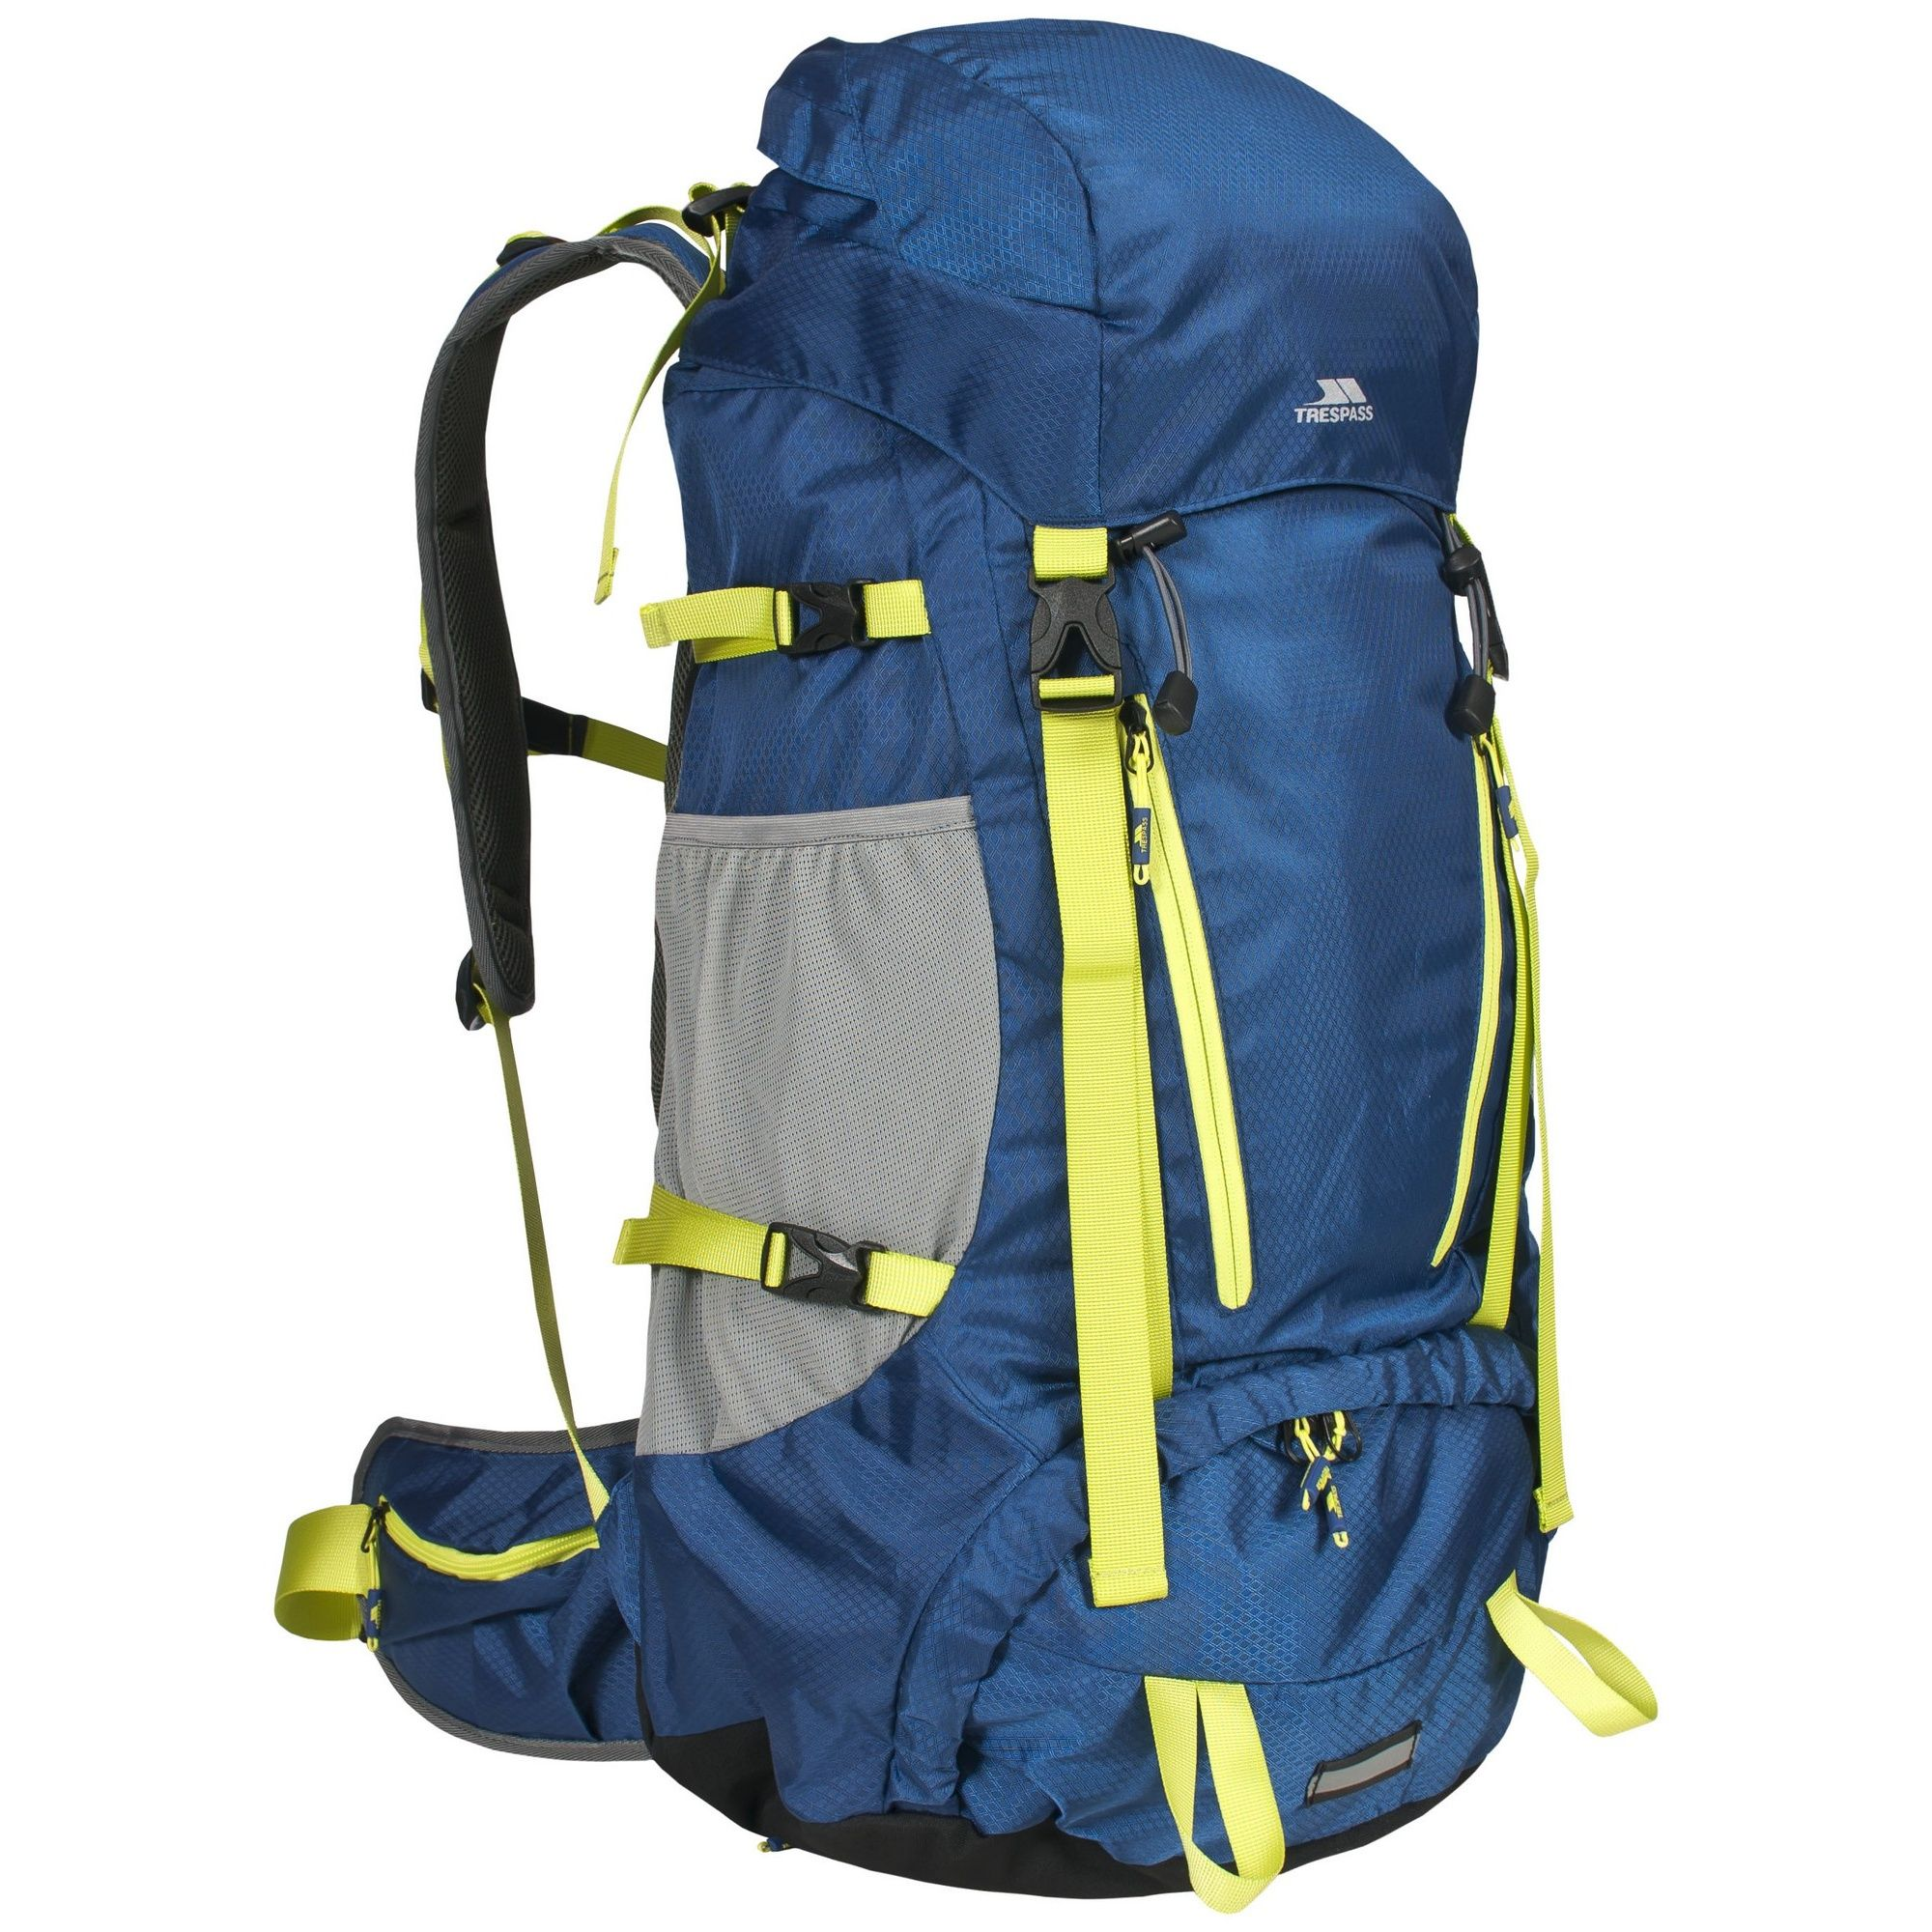 Trespass Iggy Waterproof Hiking Backpack/Rucksack (45 Litres)